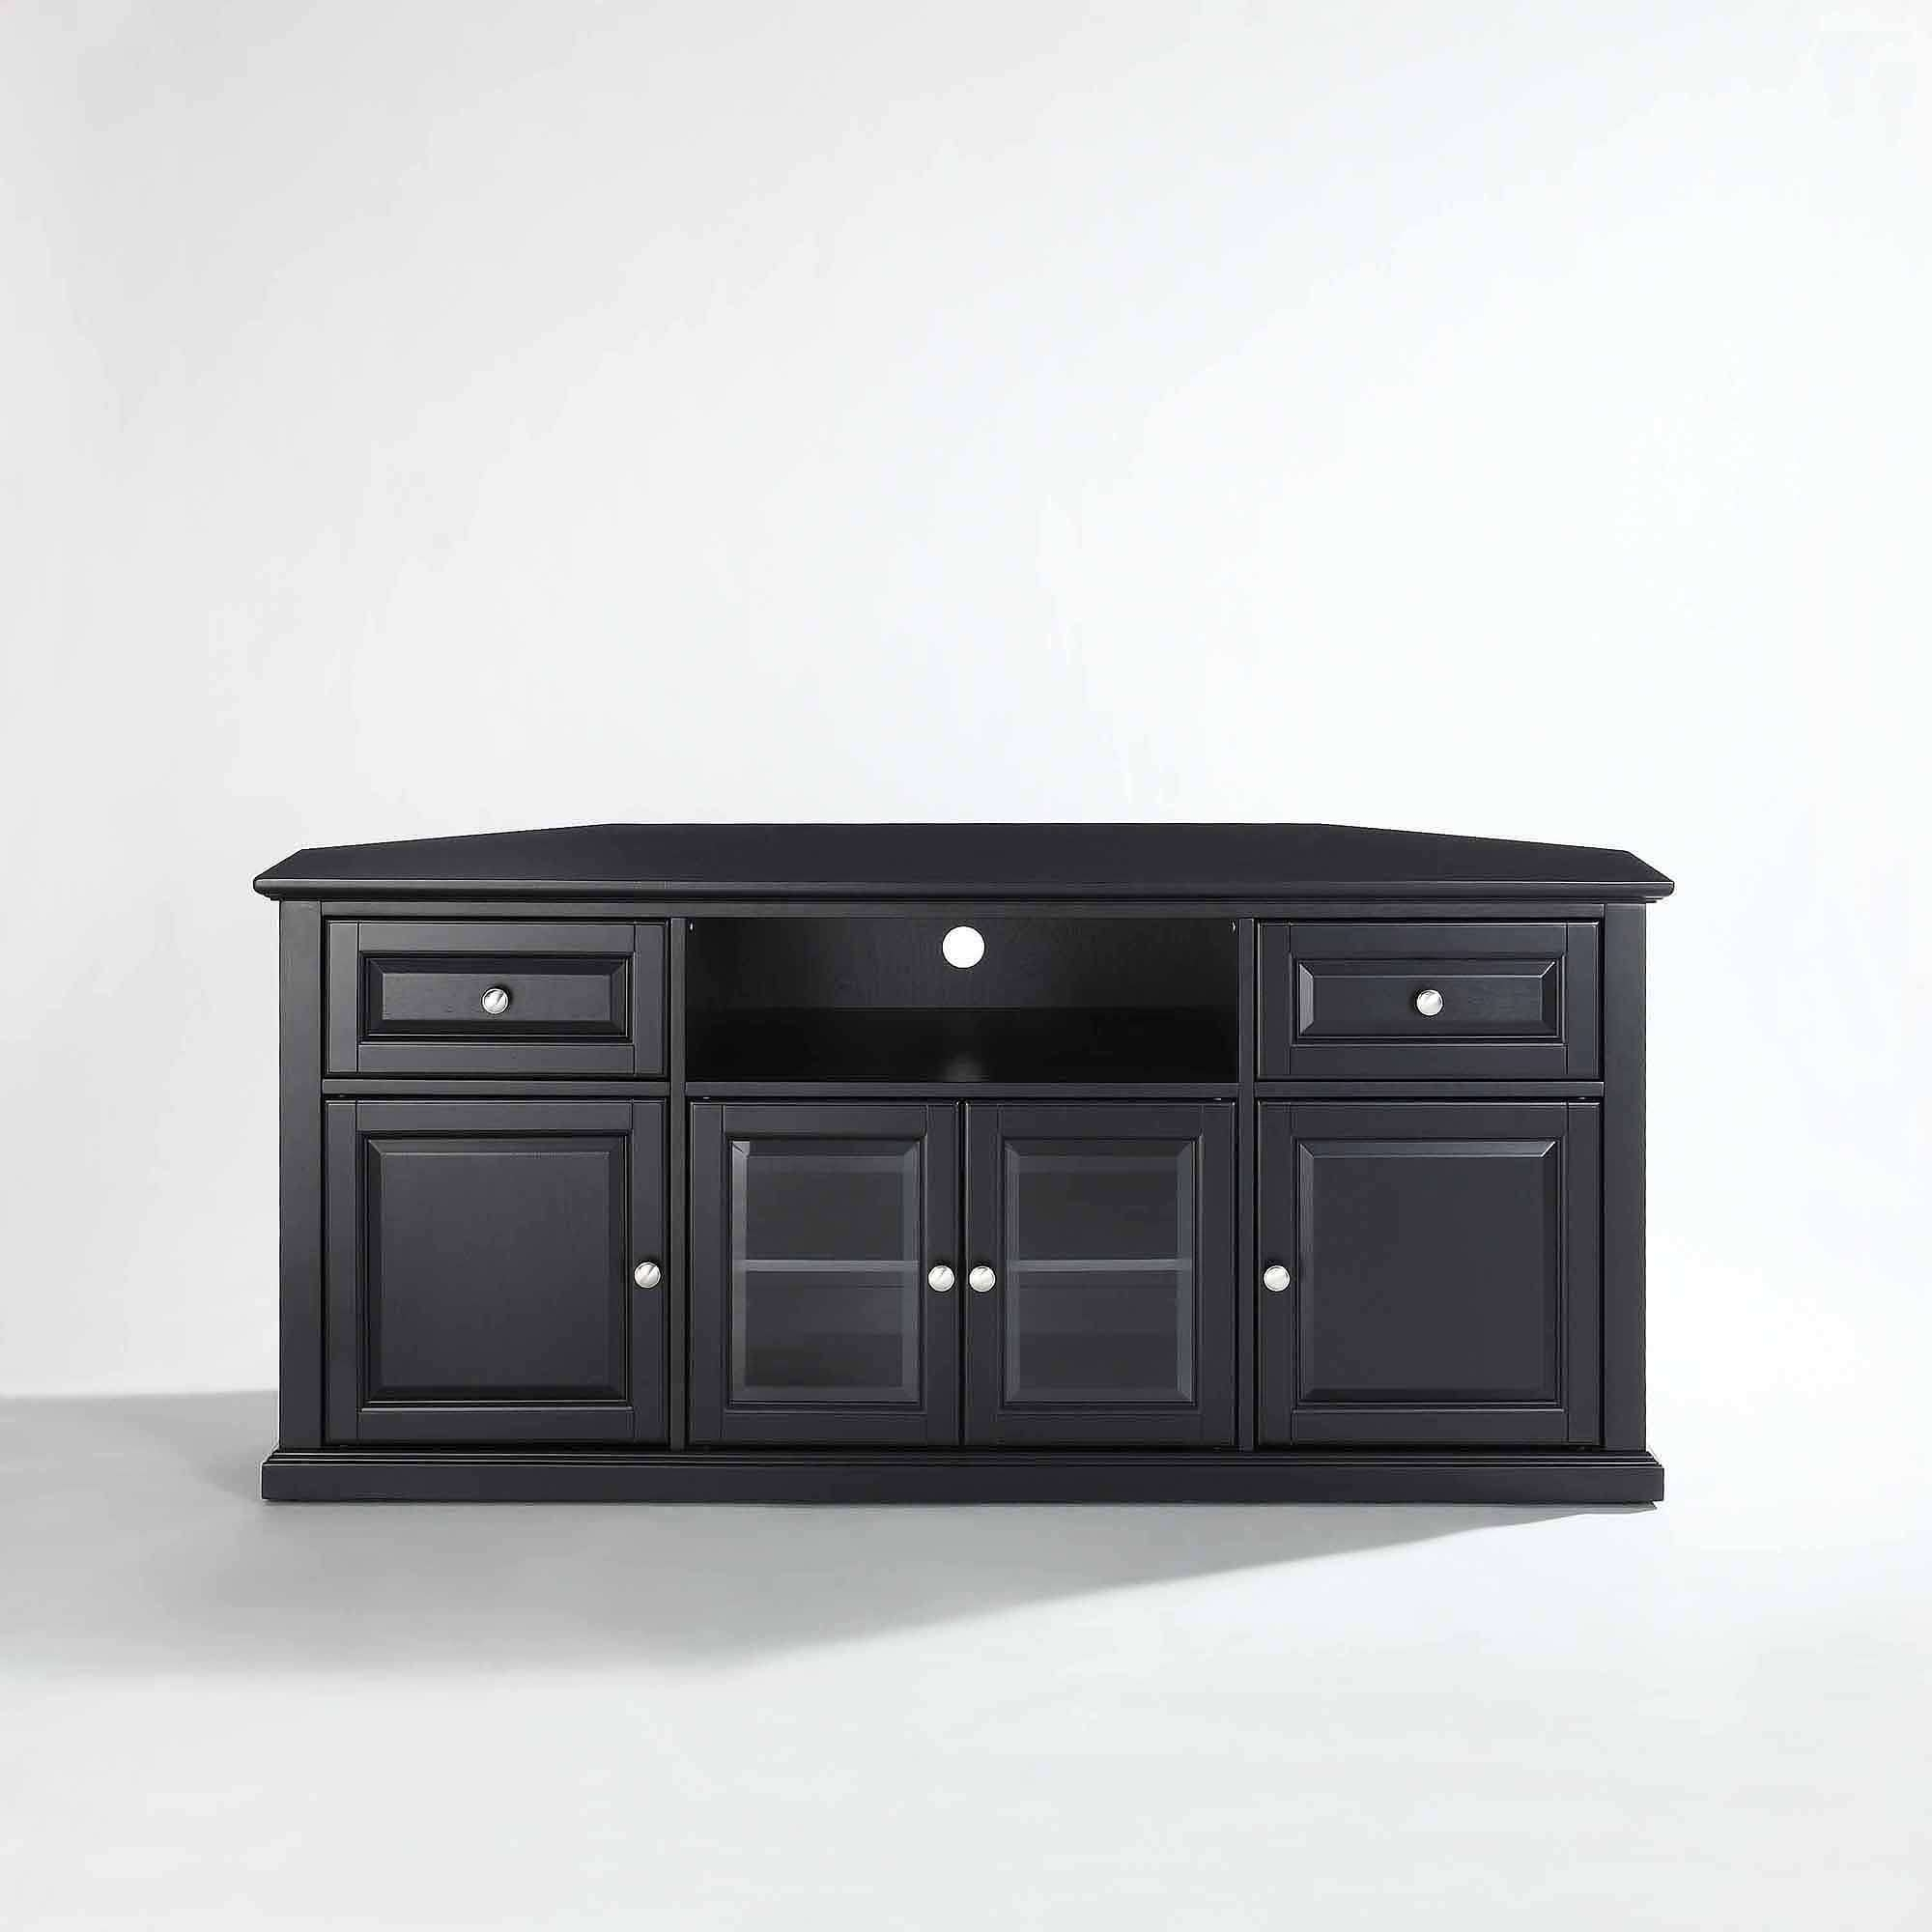 Tv : Astounding Corner Tv Stands For 46 Inch Flat Screen Satiating Inside Corner Tv Stands For 46 Inch Flat Screen (View 9 of 15)